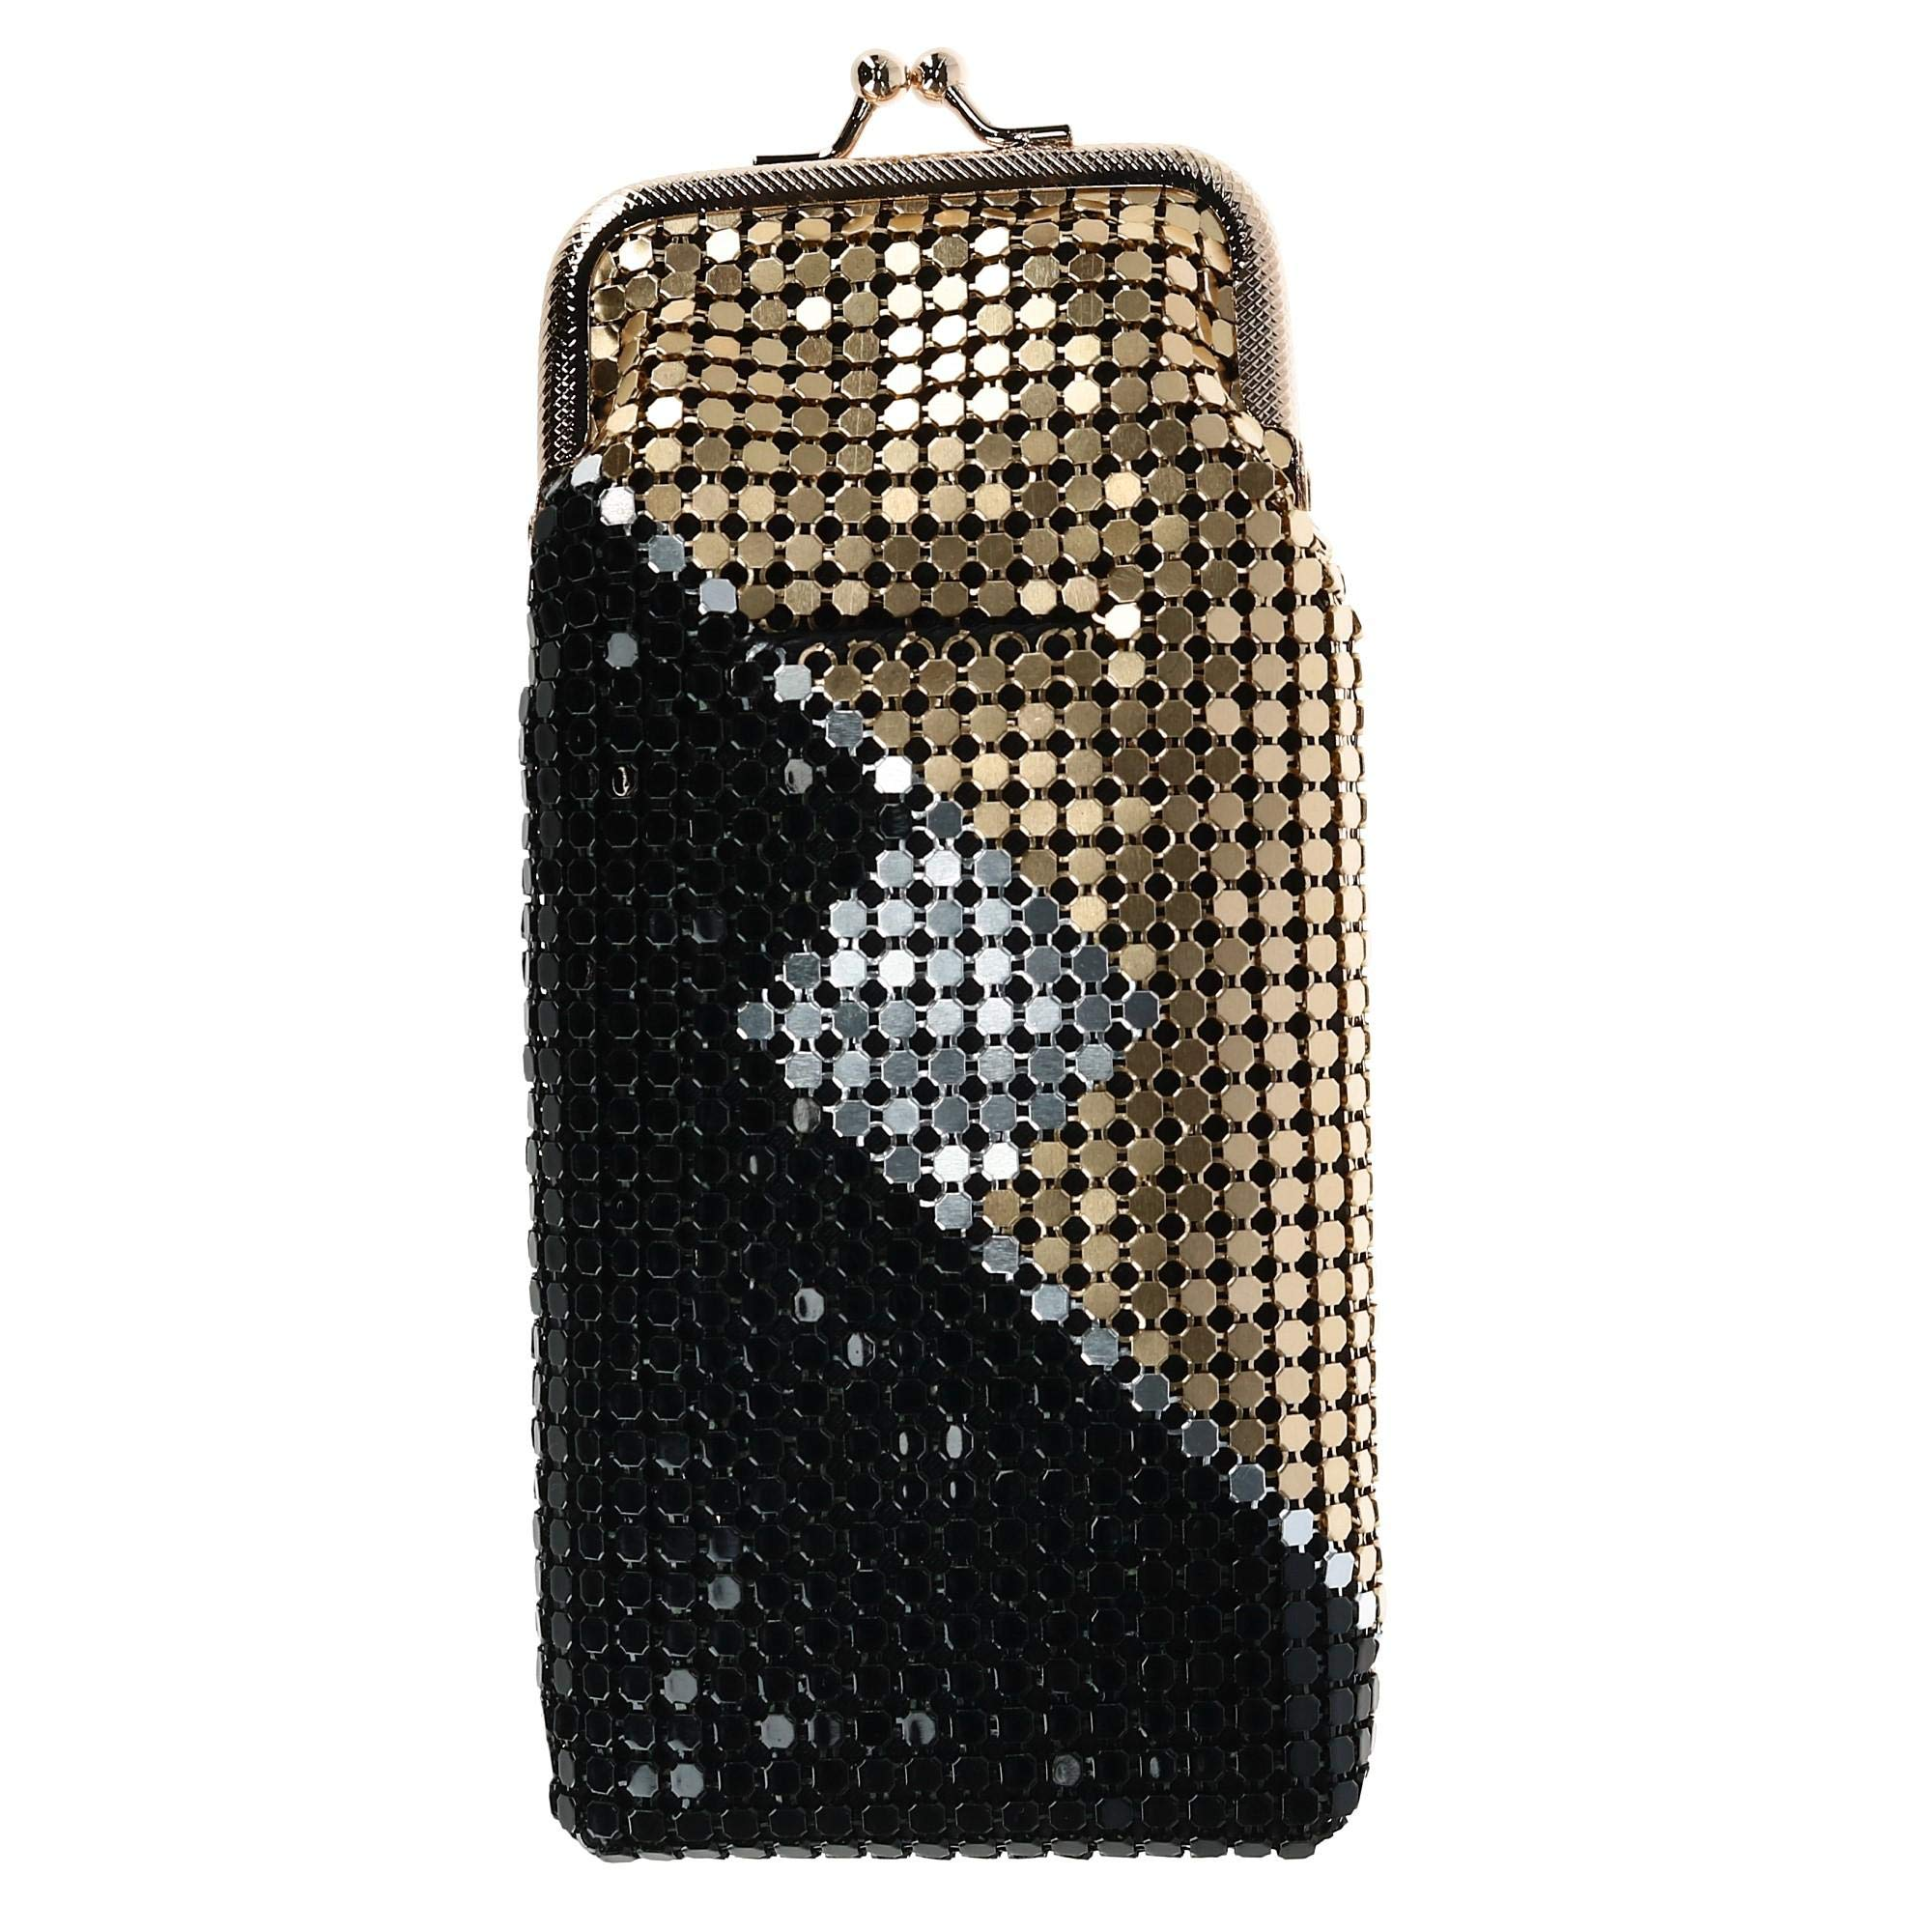 CTM Women's Mesh Pattern Cigarette Case with Lighter Pocket & Kiss Lock Closure, Black